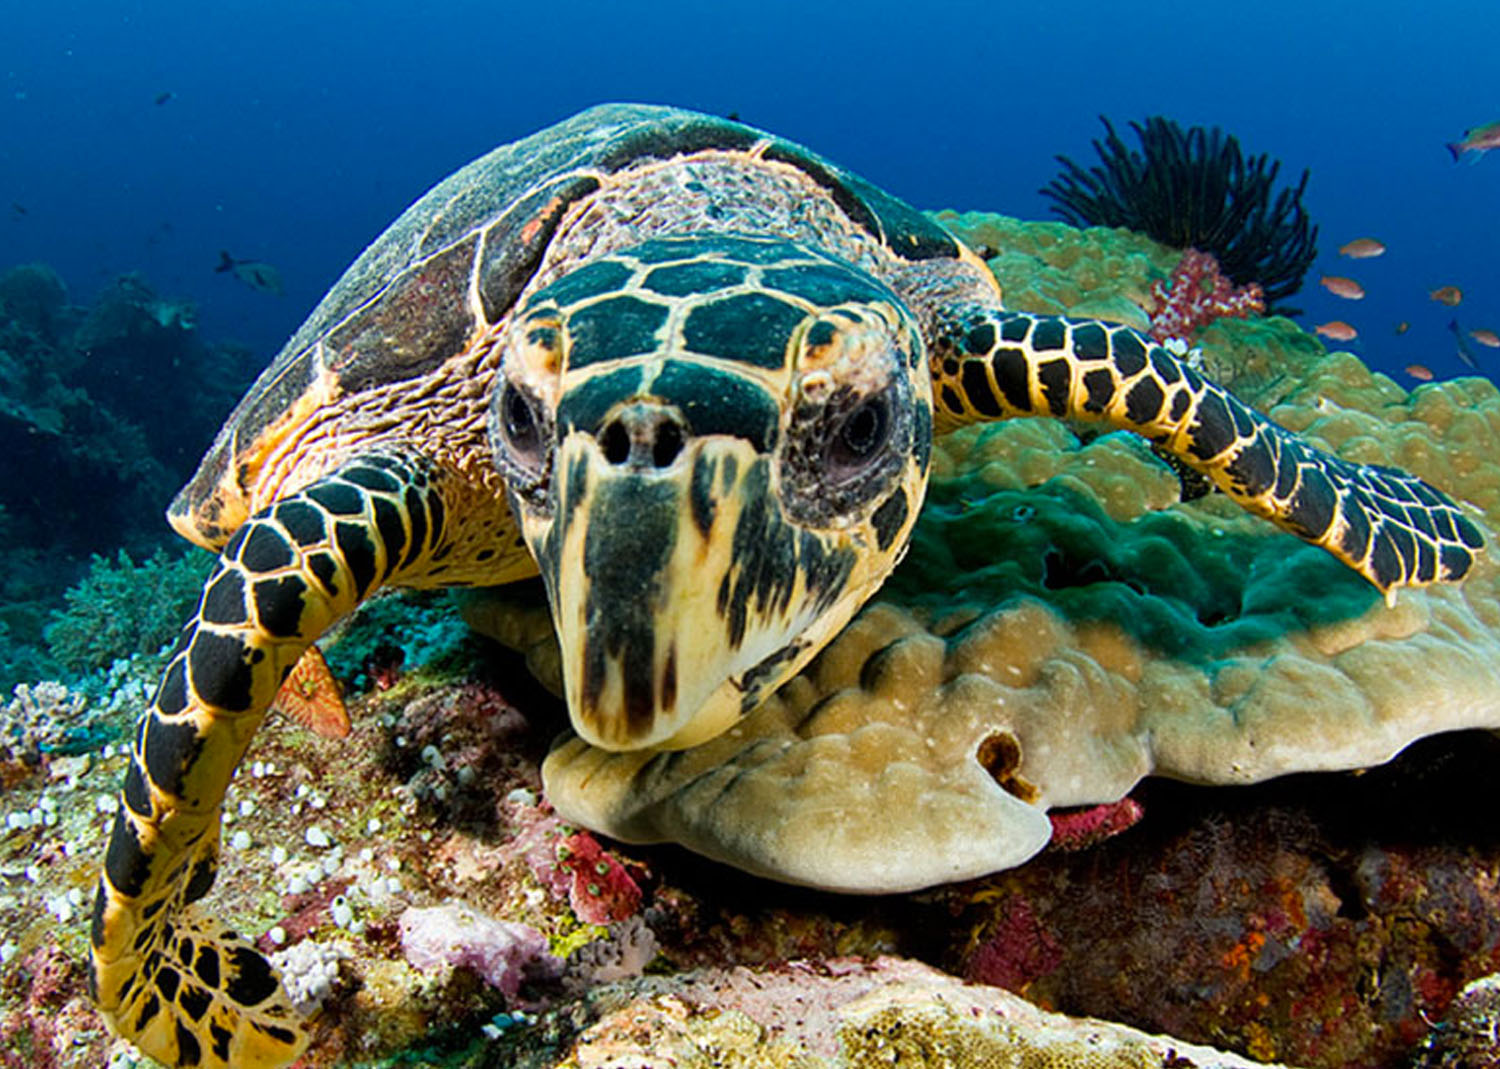 The Hawksbill's Ecosystem Benefits